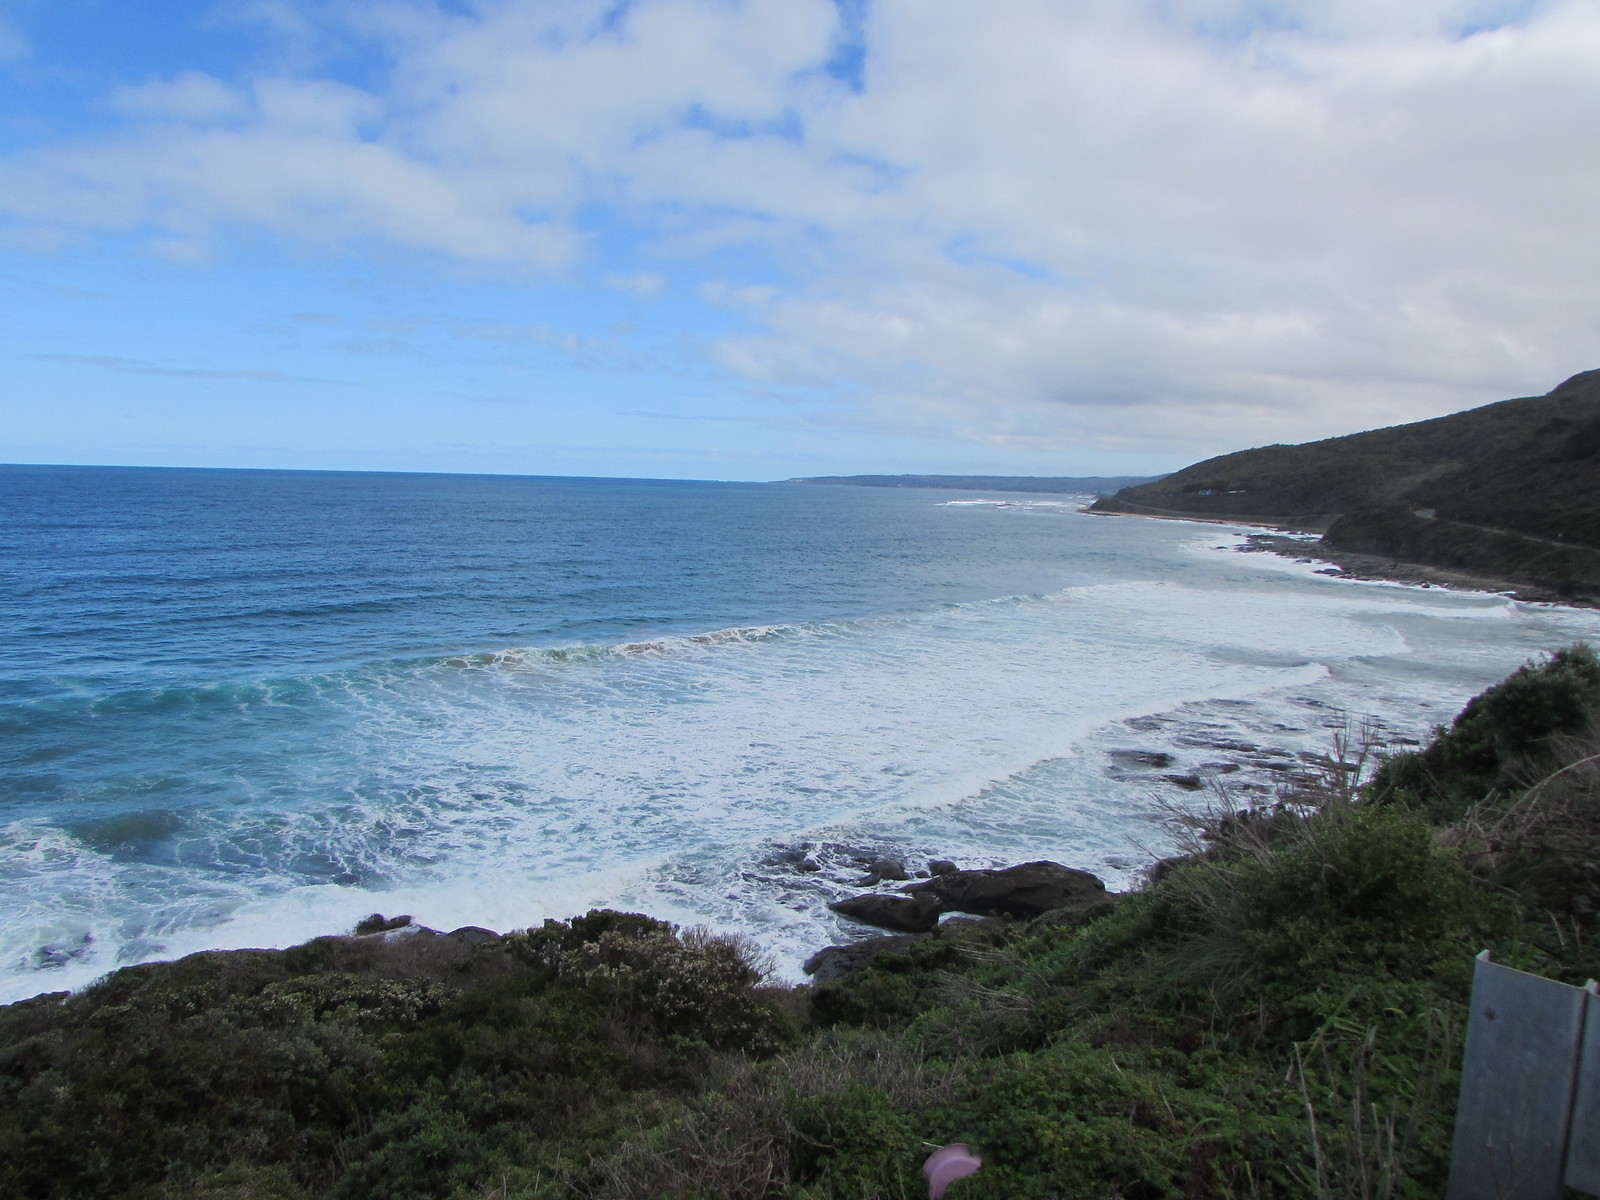 Waves - on the way to Apollo Bay